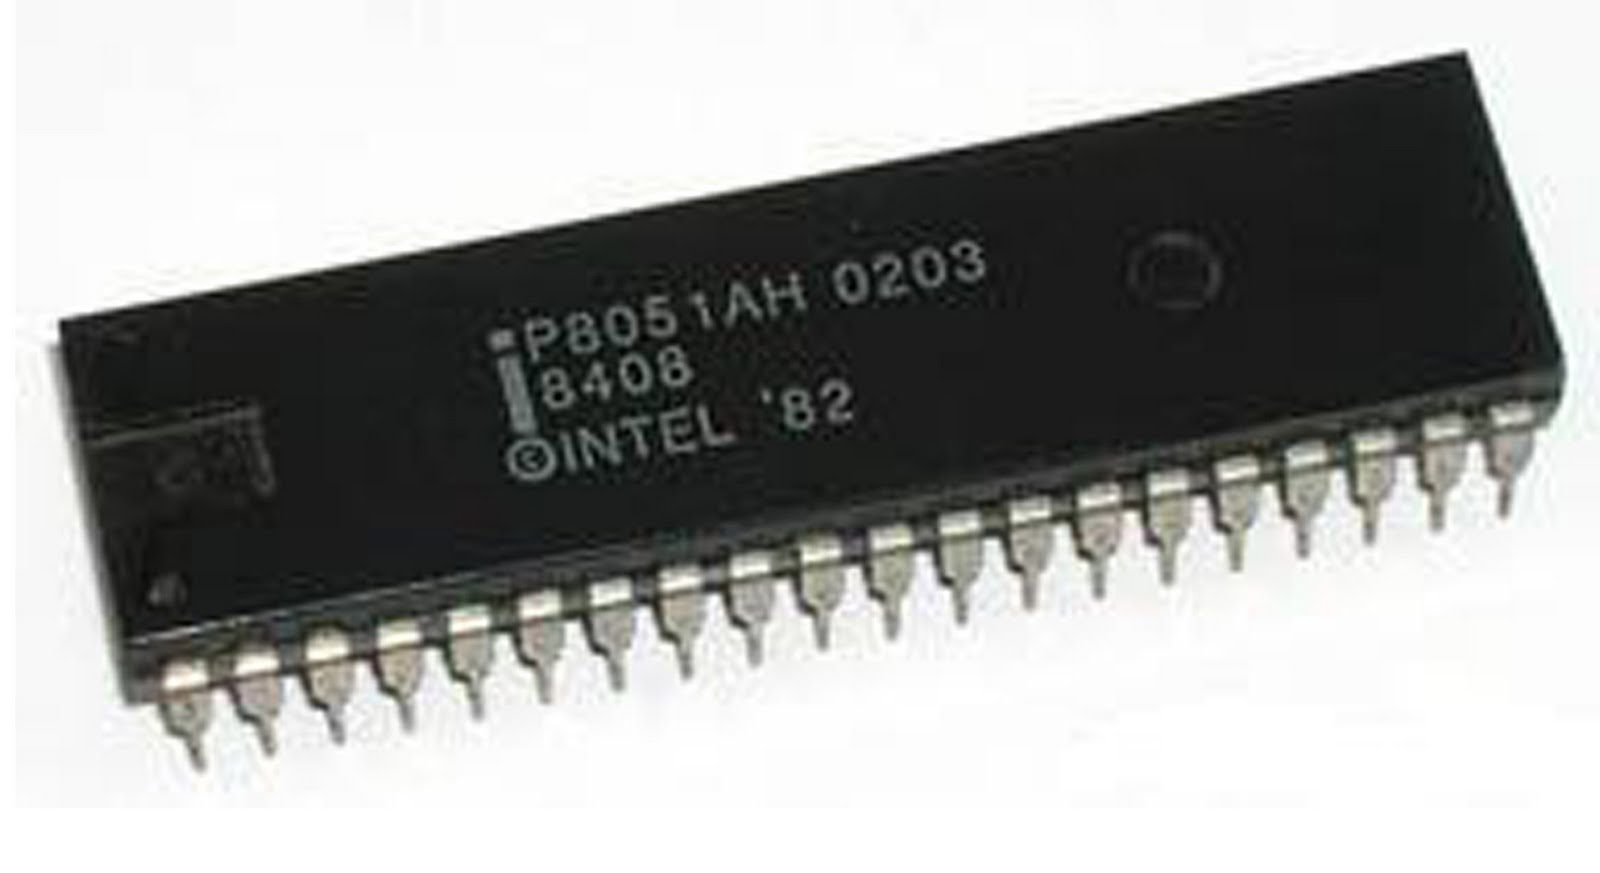 8051 intel microcontroller 21 different 8051 microcontroller produced by intel 22 special function  register names, symbols and addresses 23 program status word (psw) bits.